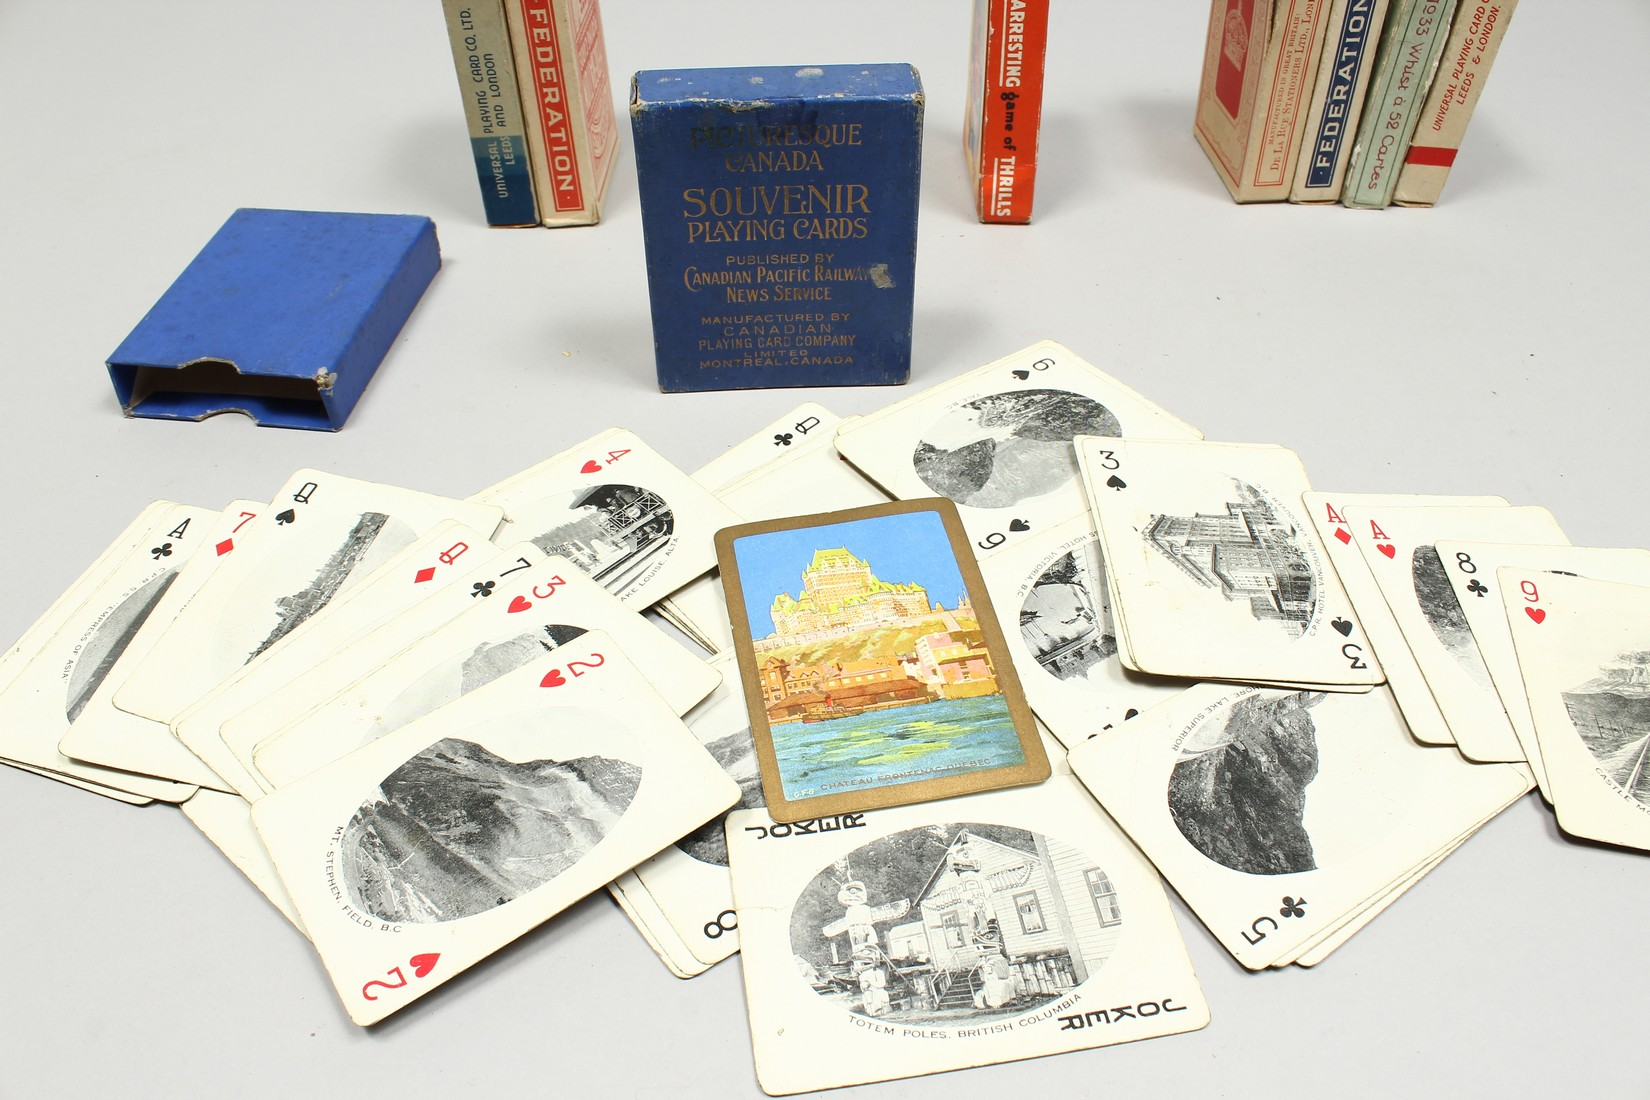 A COLLECTION OF VARIOUS PLAYING CARDS. - Image 12 of 16